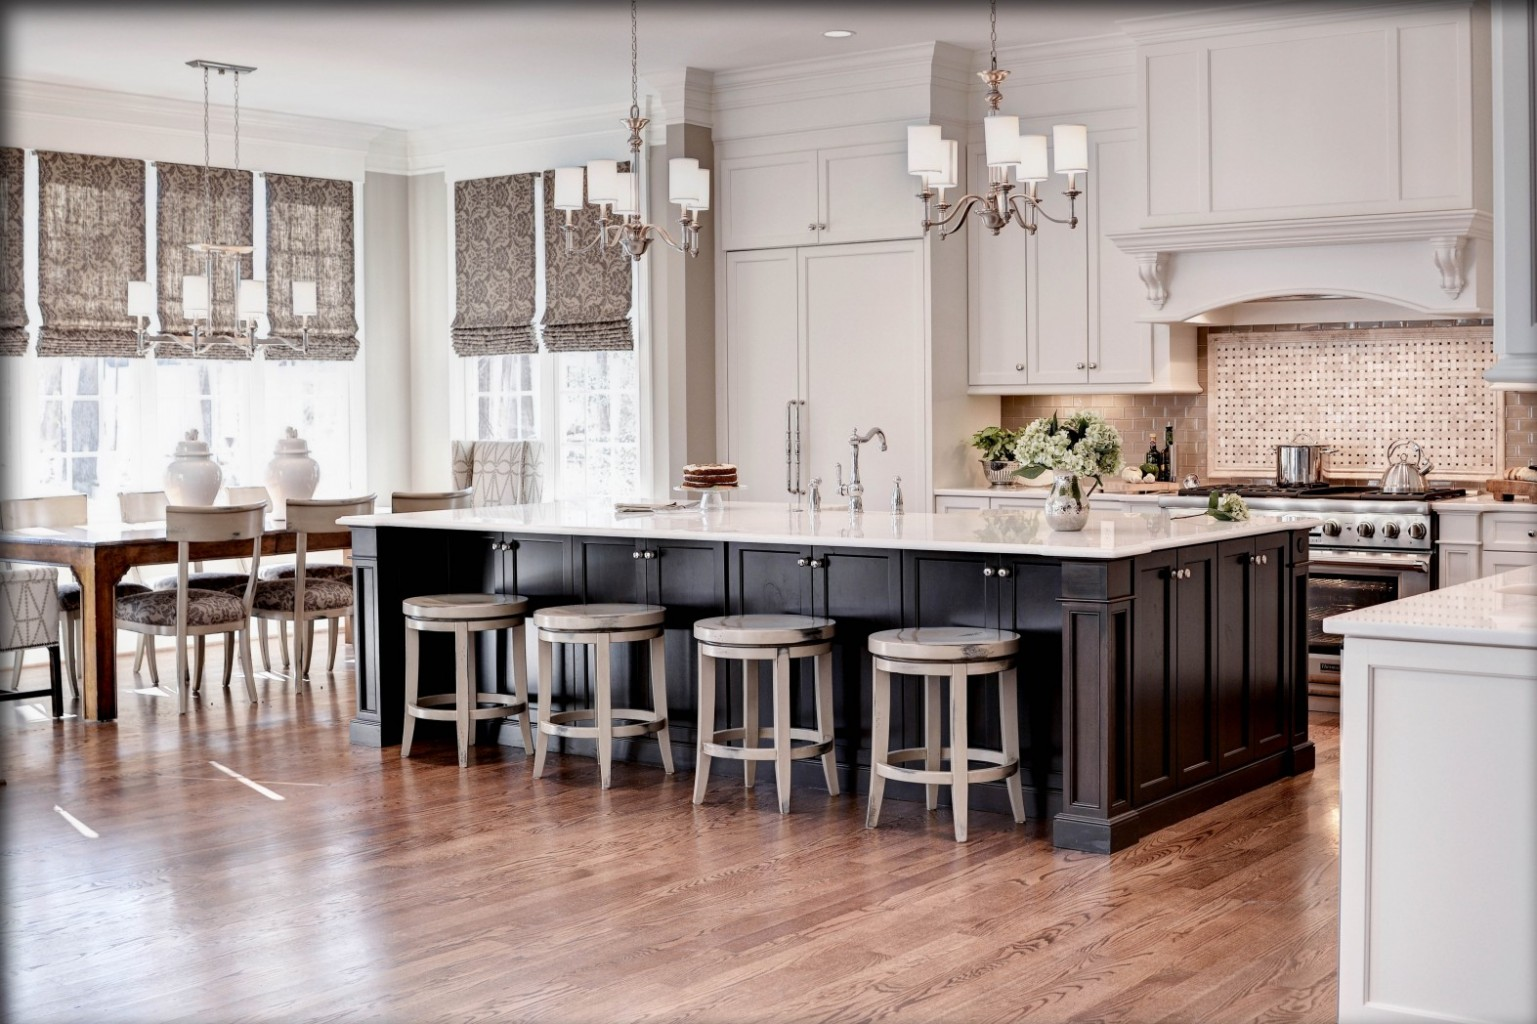 Award-winning kitchen by Cabinetworks in Williamsburg, VA